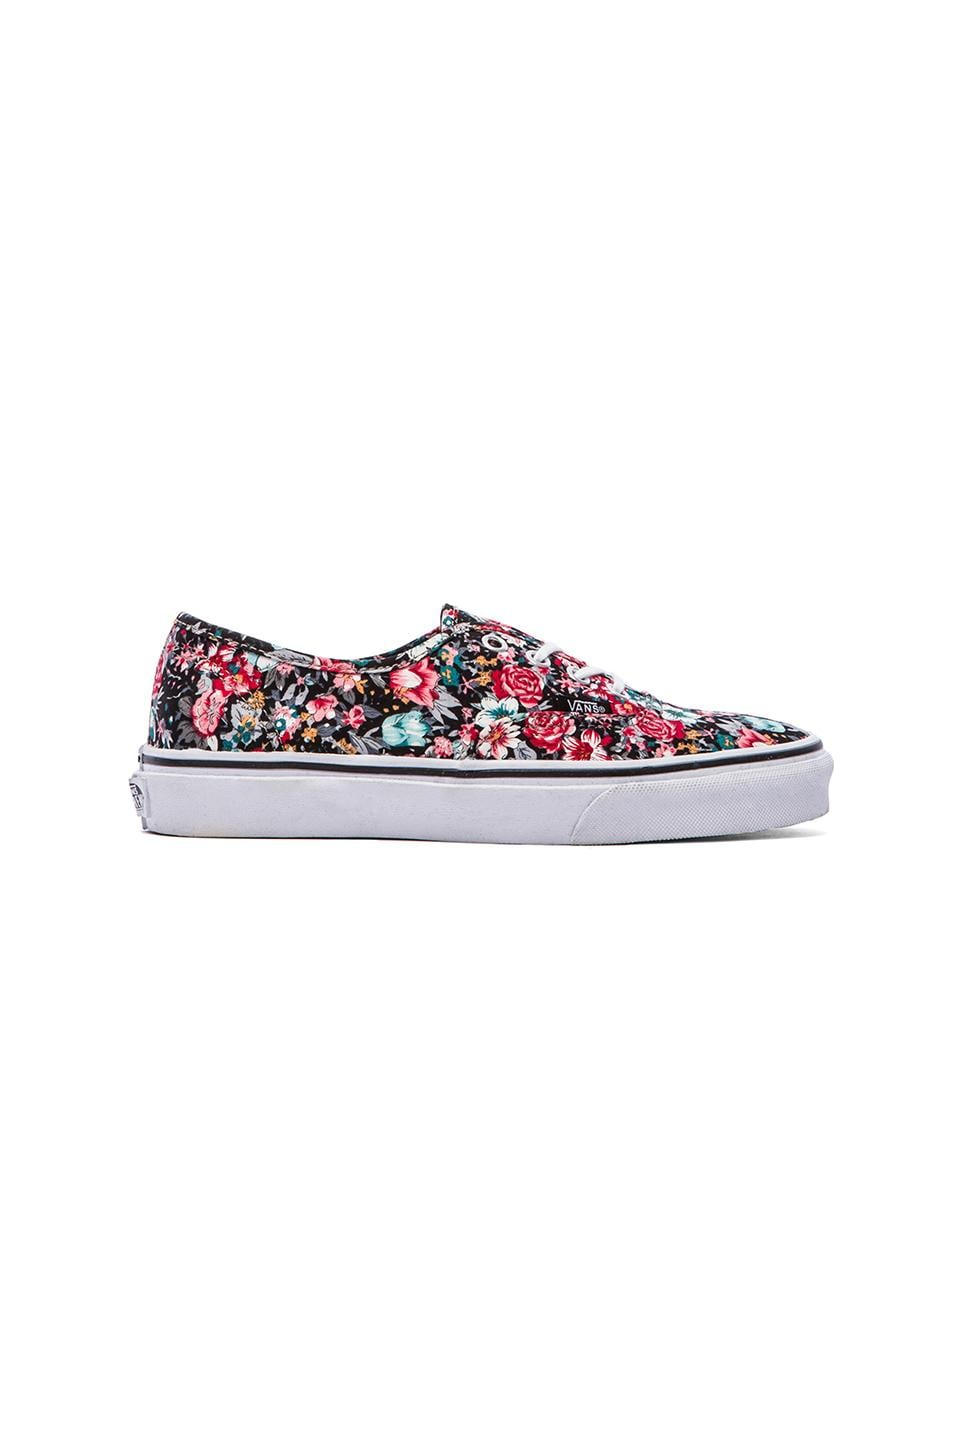 Vans Authentic Sneaker in Multi Floral